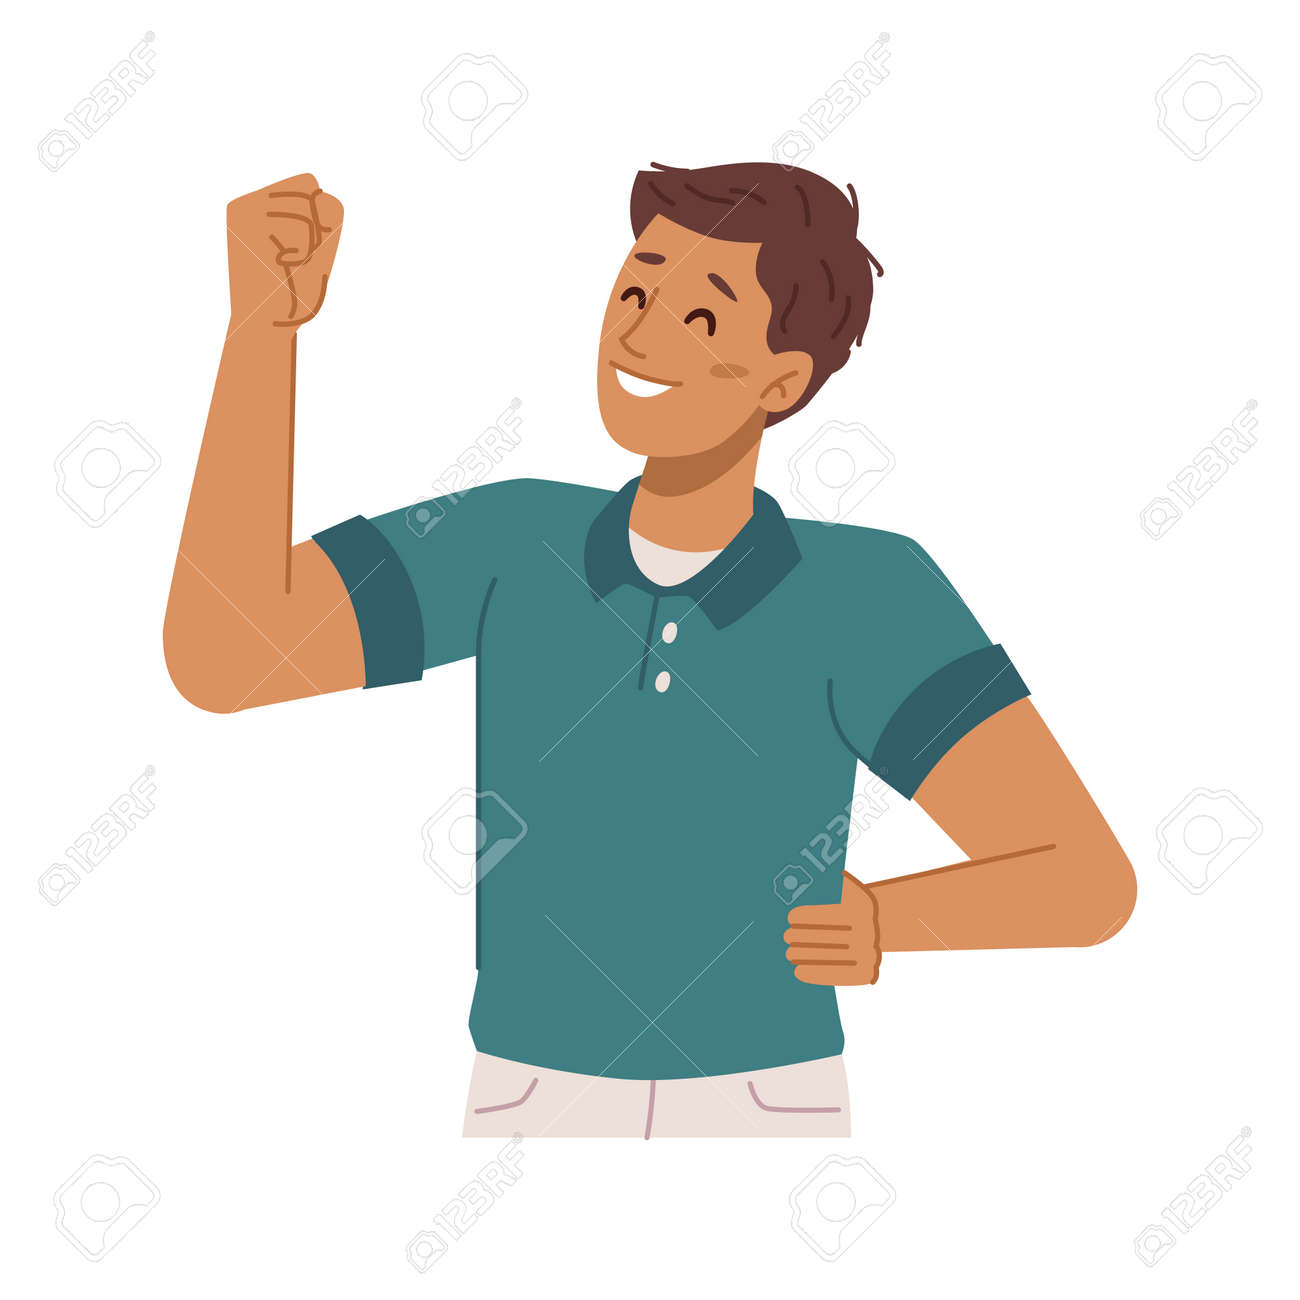 Happy boy kid gesturing showing muscles, isolated personage expressing strength and power. Confidence and excitement, cool guy with muscular hand with biceps. Flat style cartoon character vector - 171581946